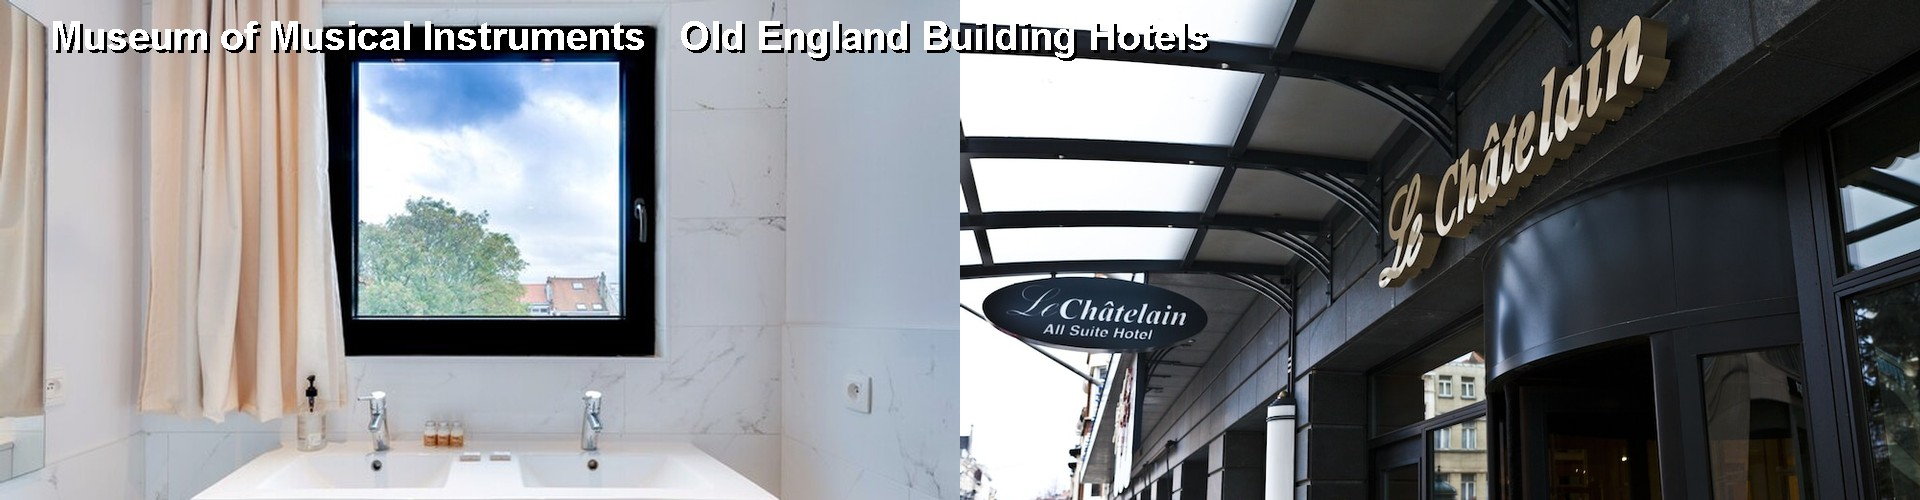 5 Best Hotels near Museum of Musical Instruments Old England Building